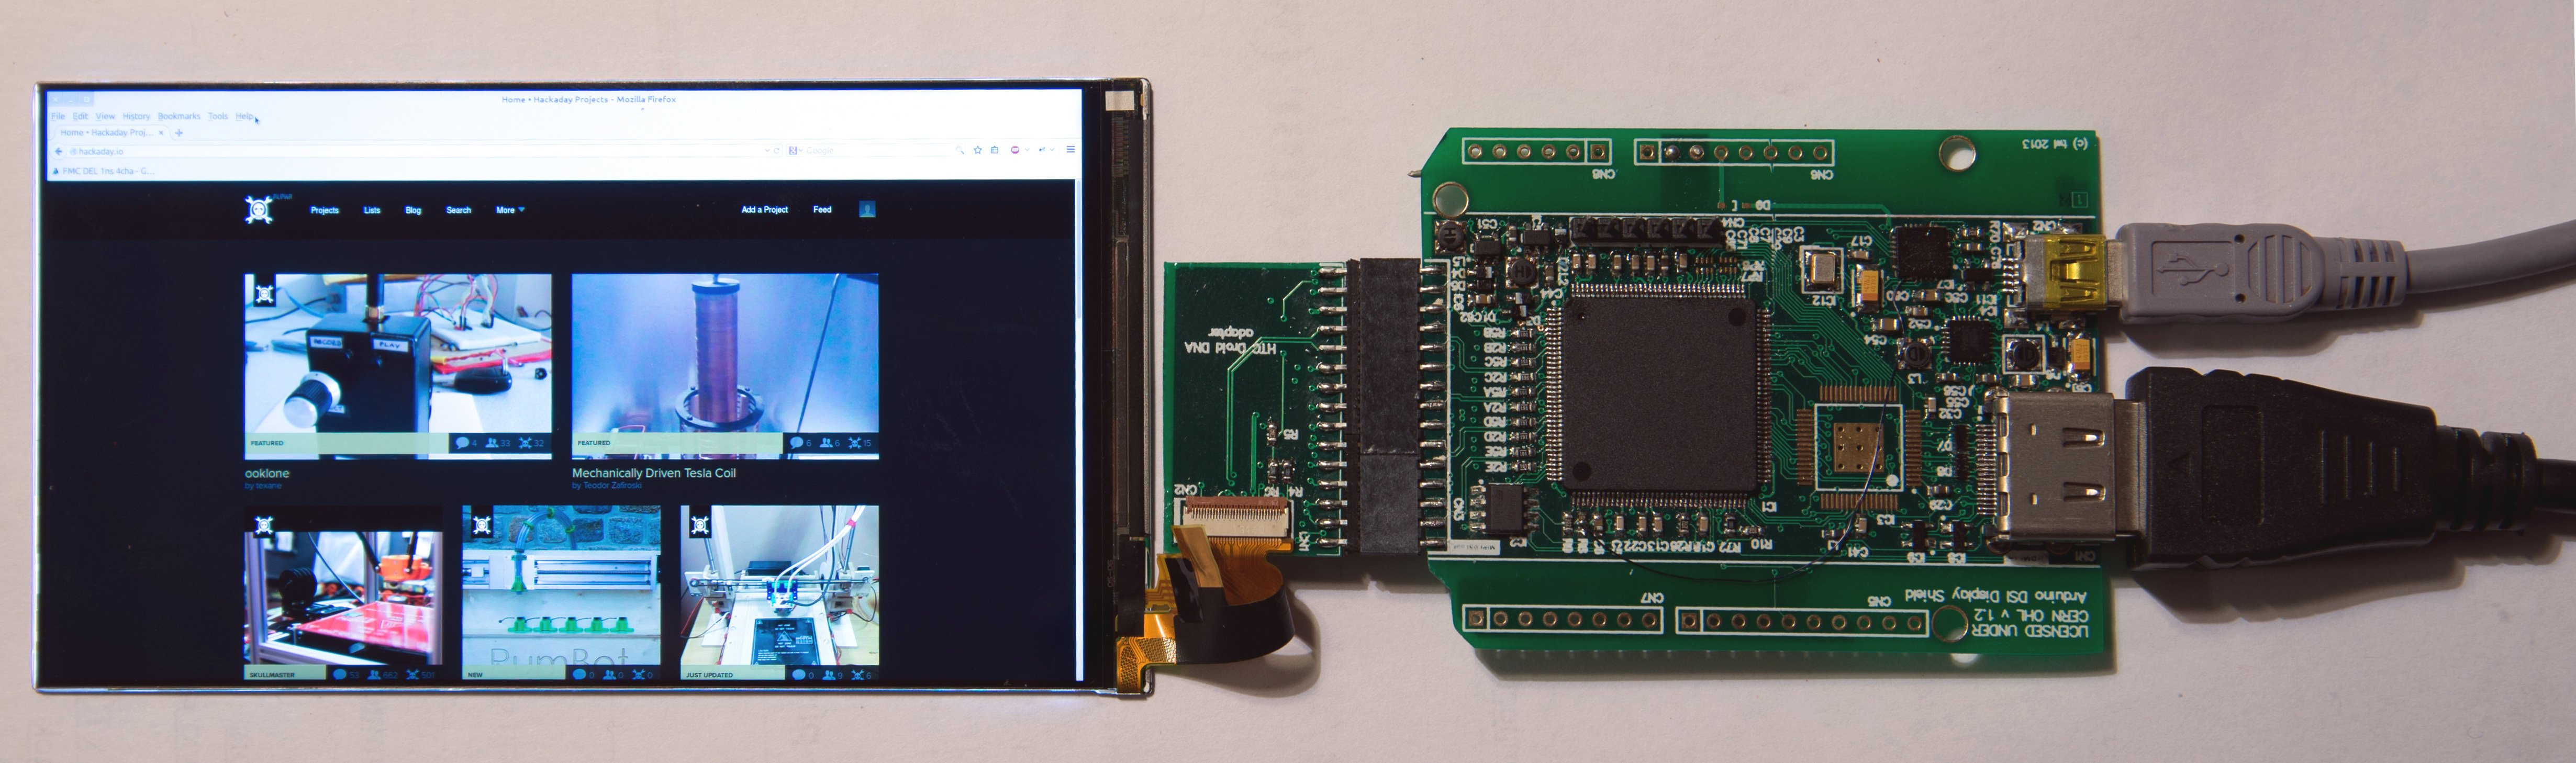 Control smartphone display from mipi serial